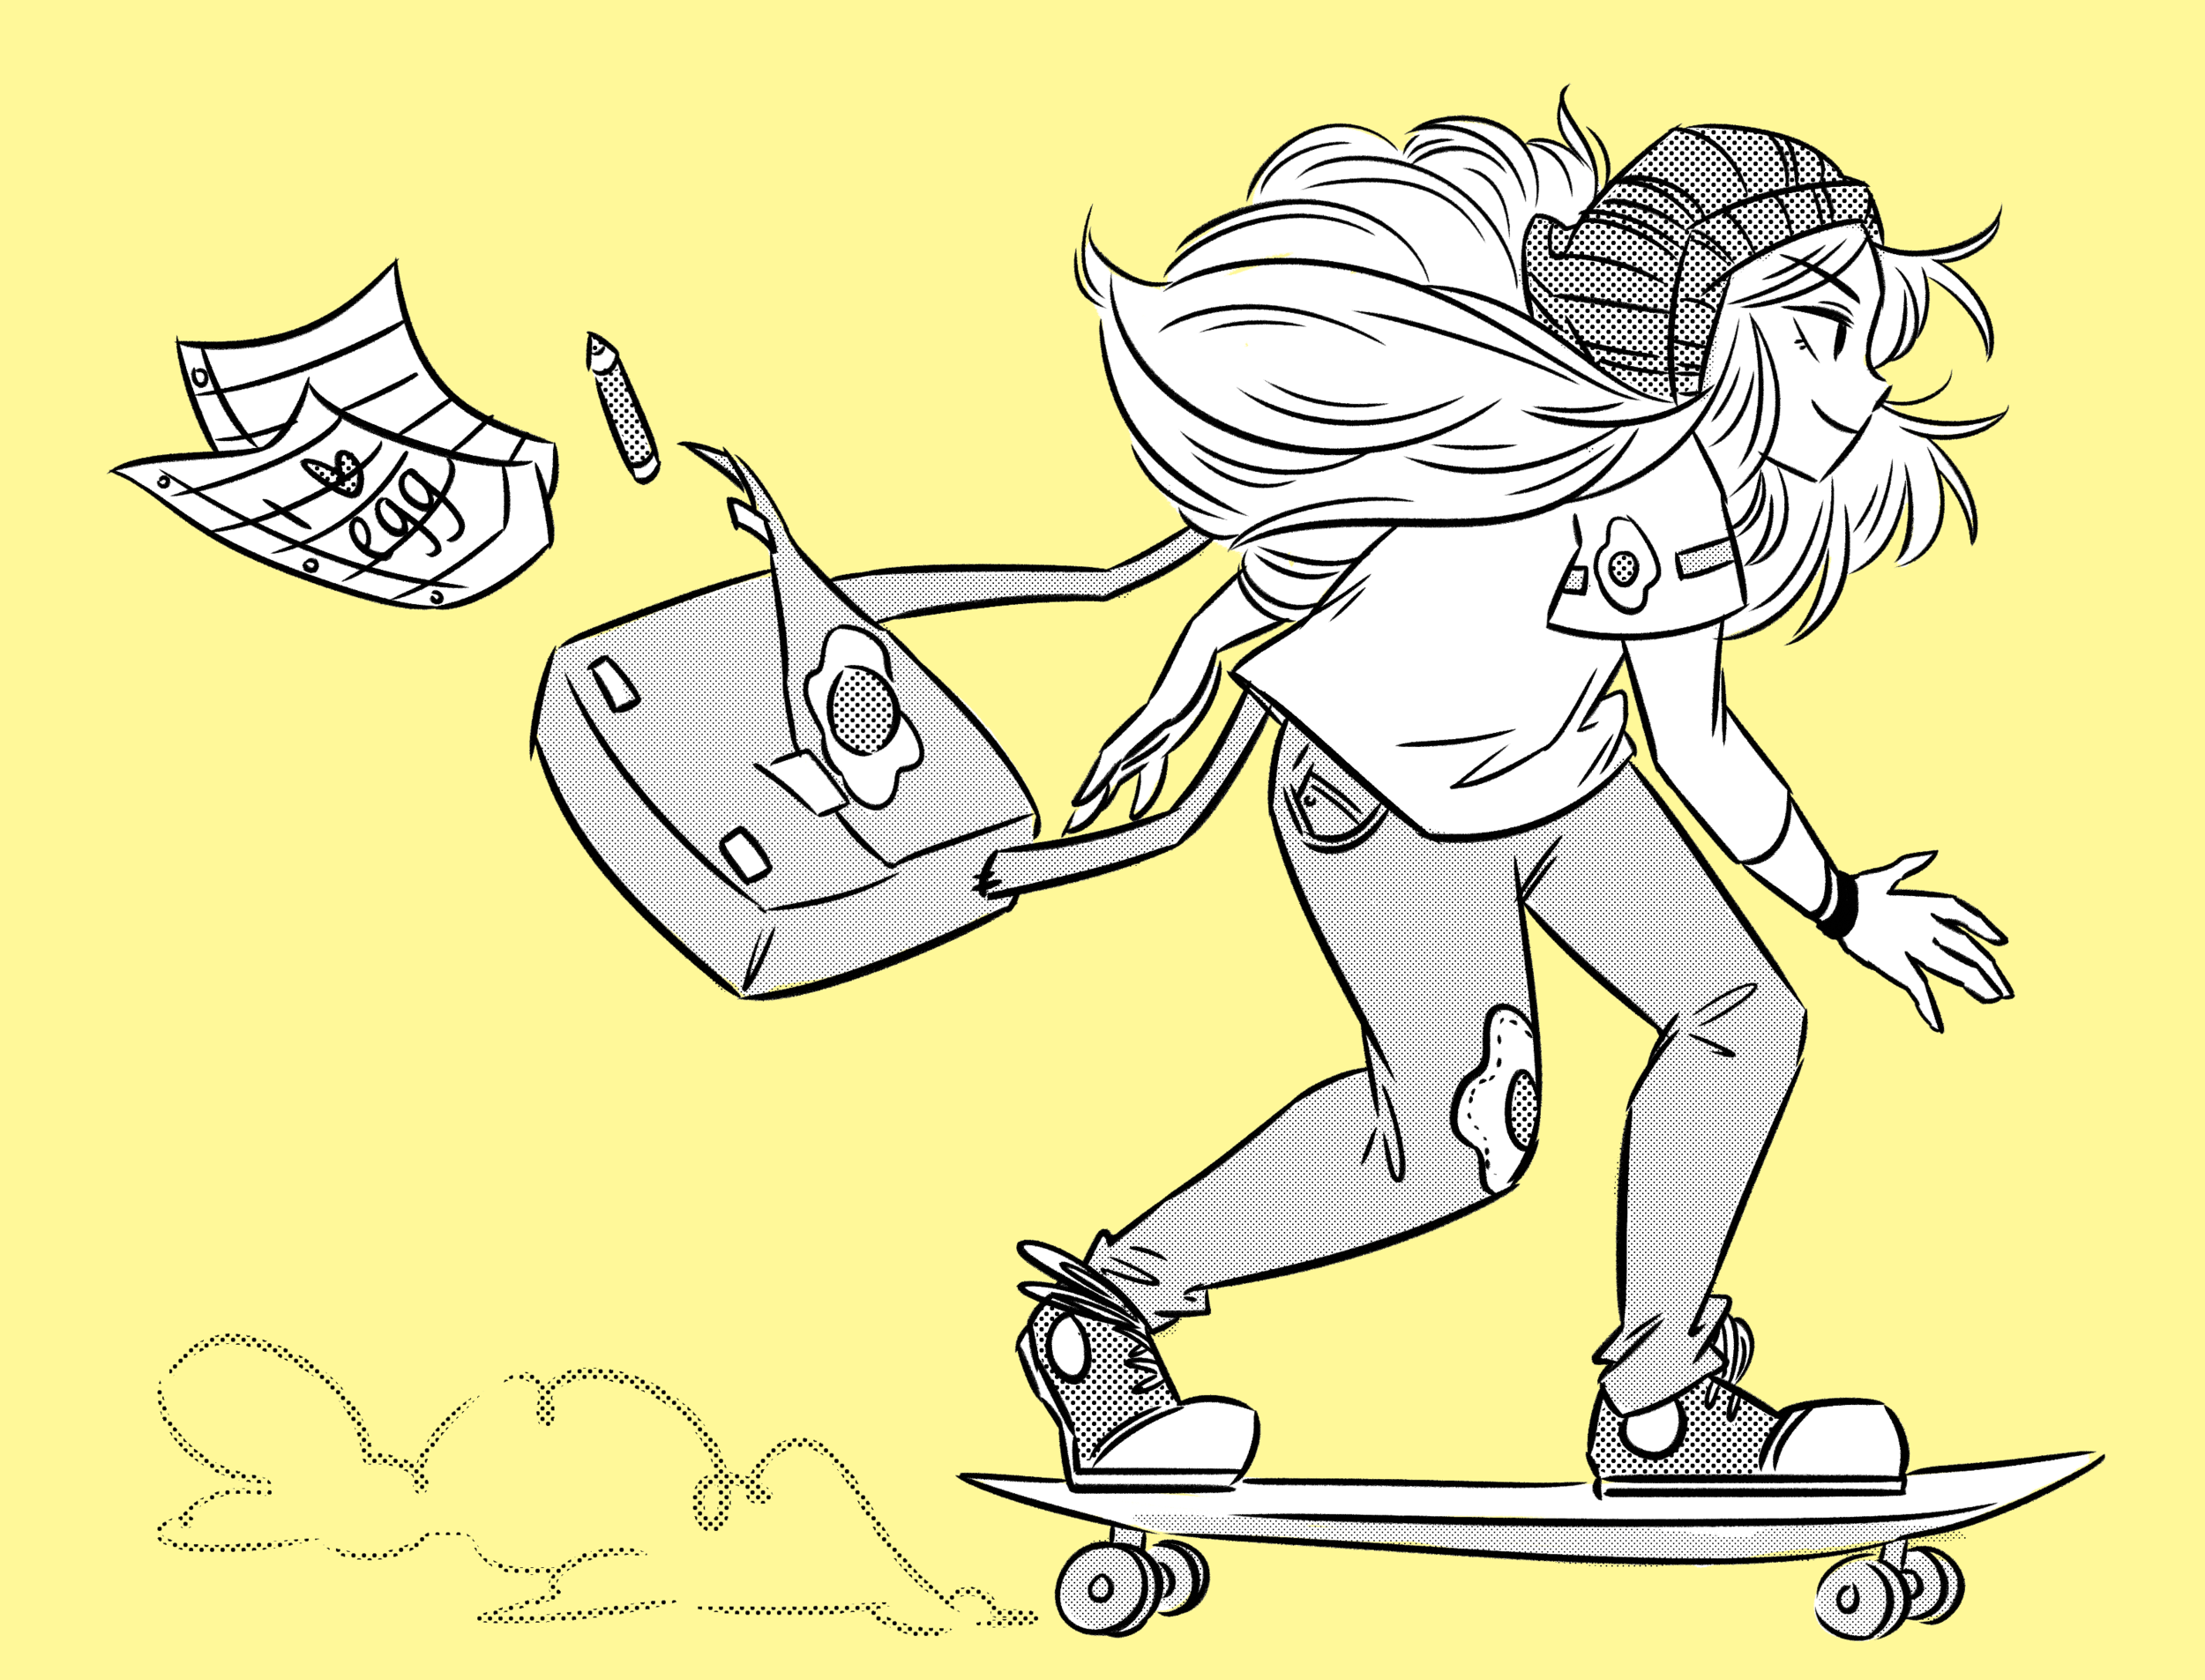 skater girledit.png